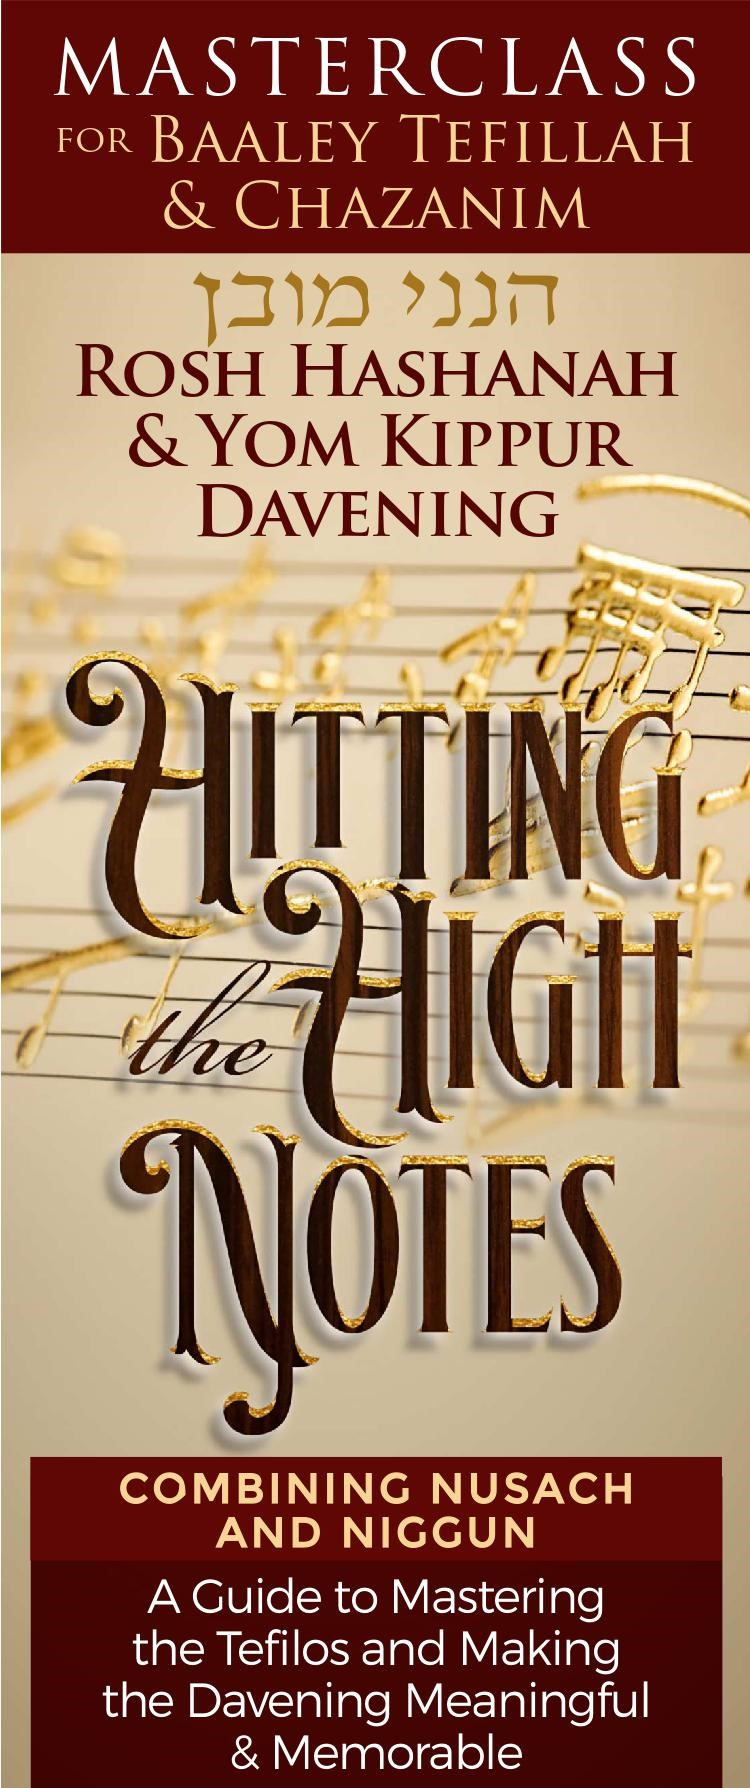 Hitting the High Notes - Yom Kippur Davening (Masterclass)